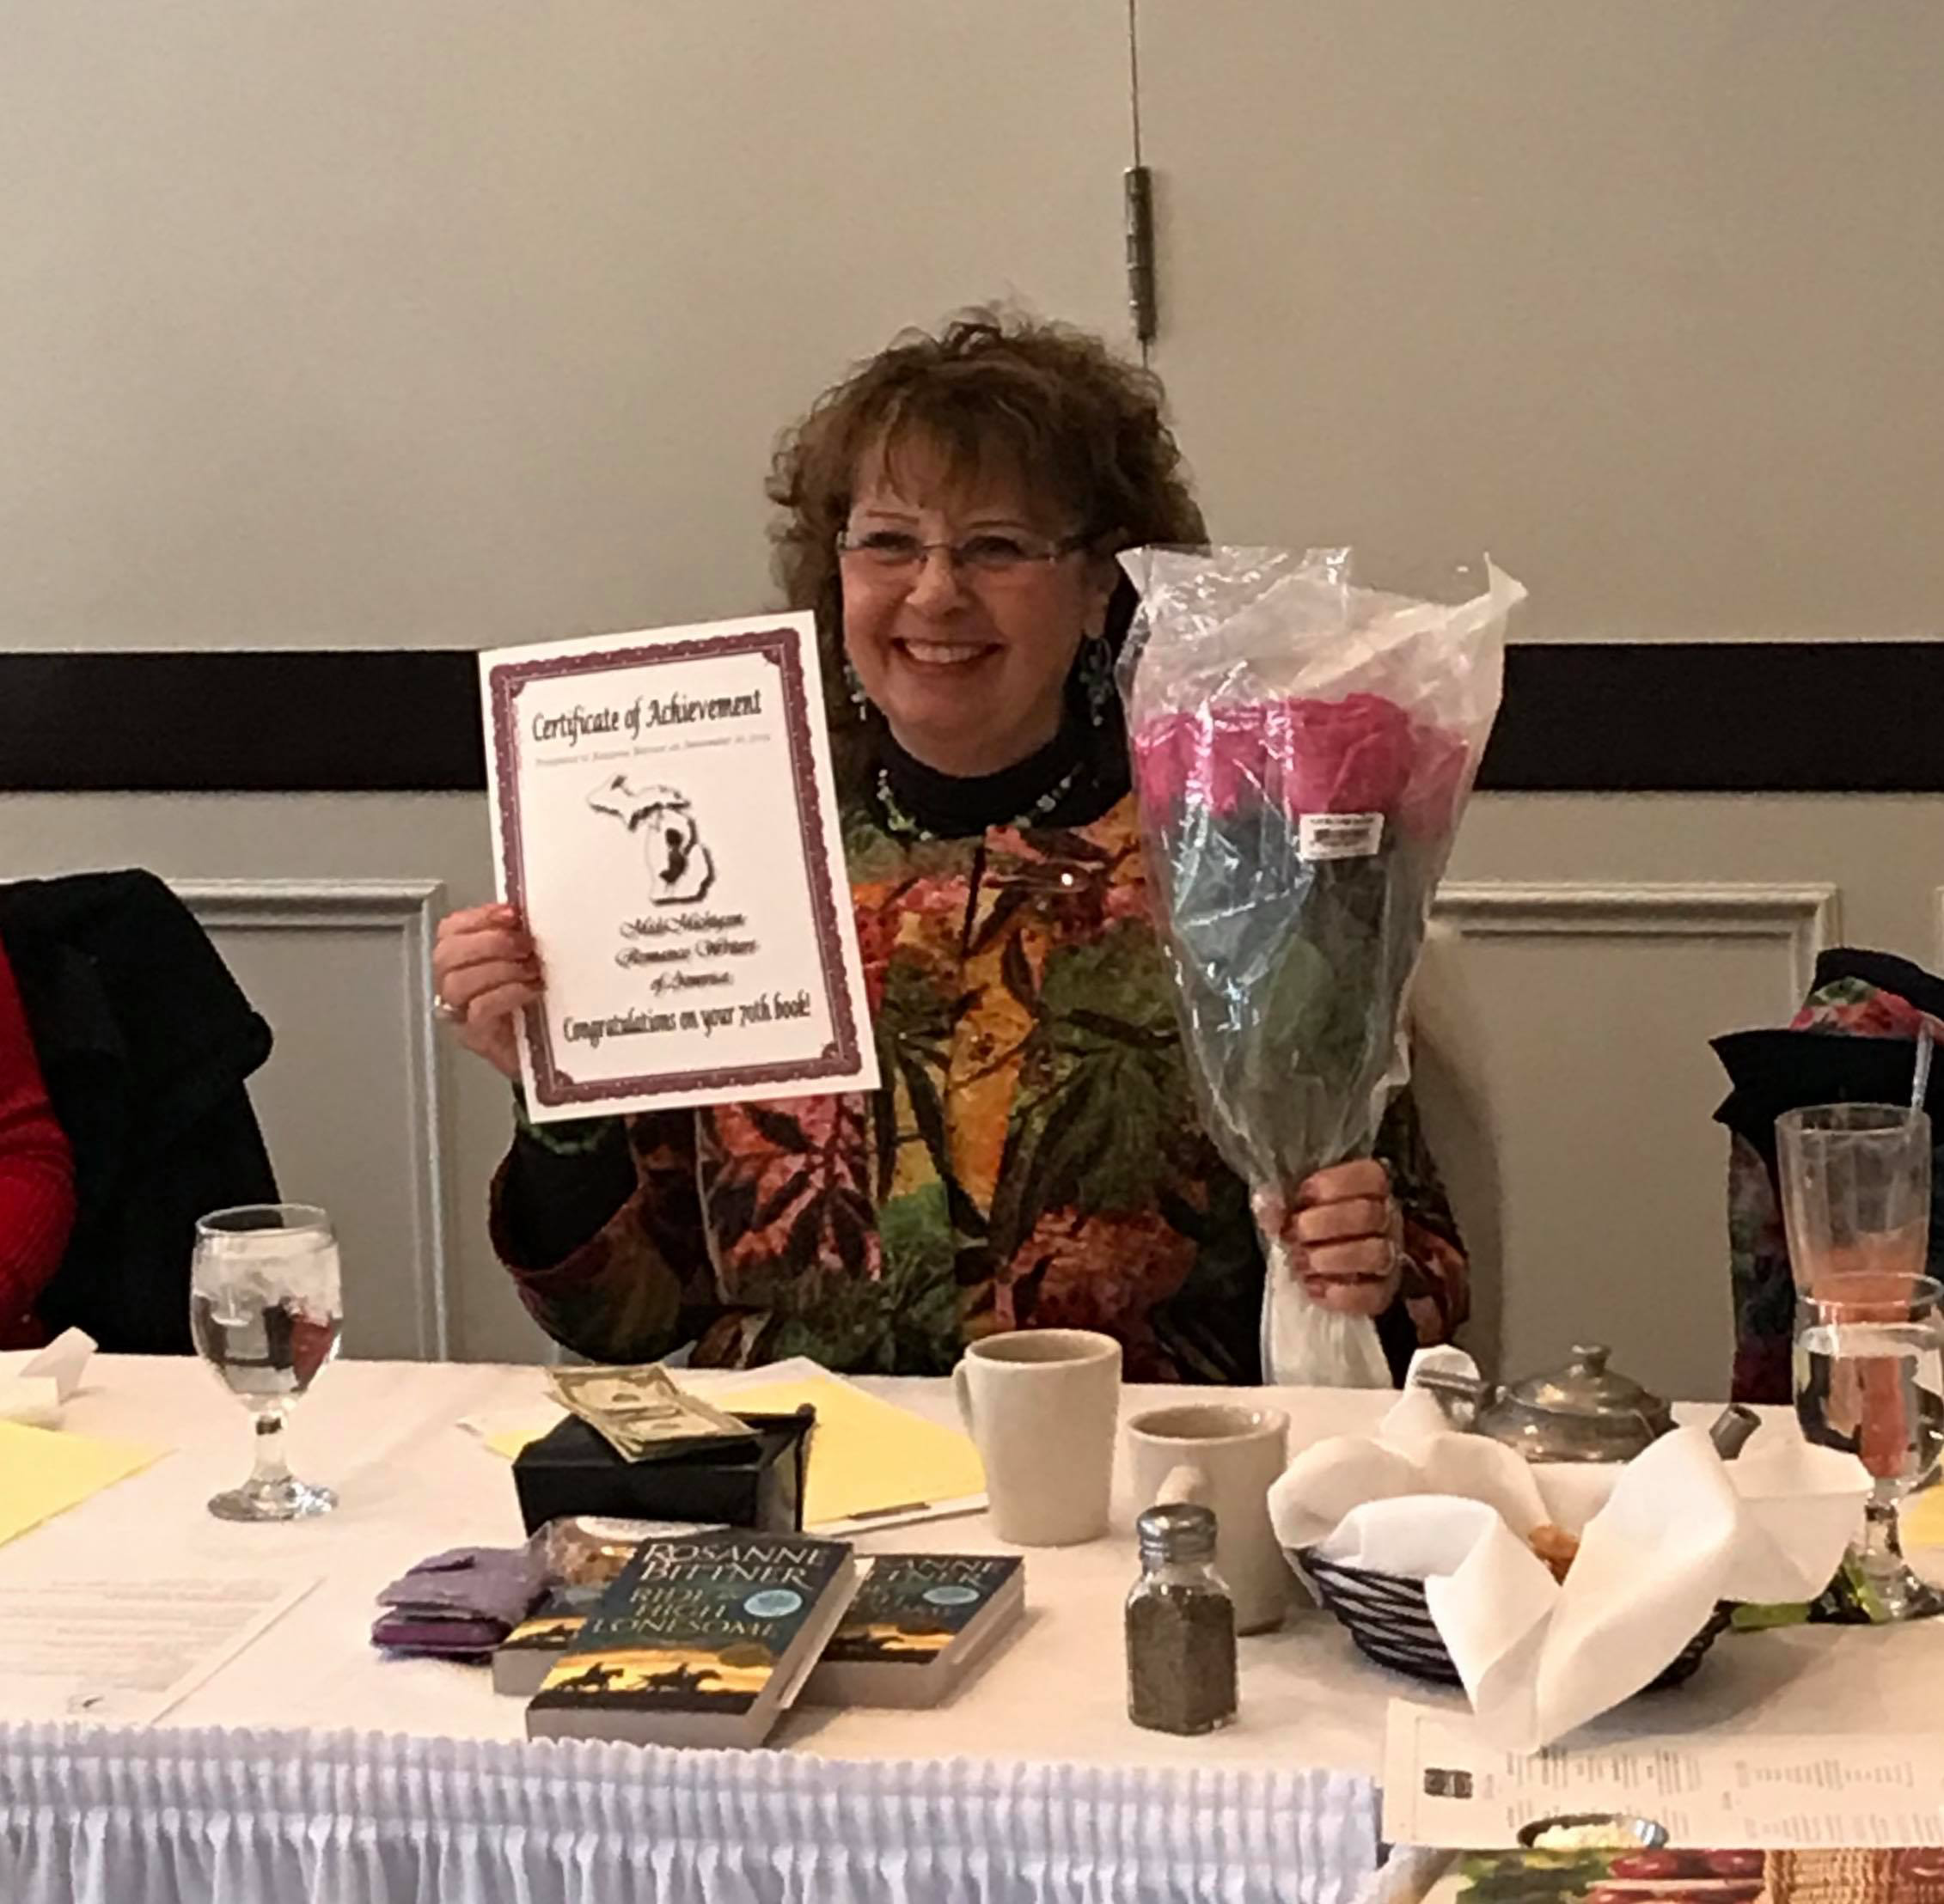 Long time member Rosanne Bittner was honored at our November meeting for publishing her 70th book! What an awesome achievement! Way to go, Rosanne.